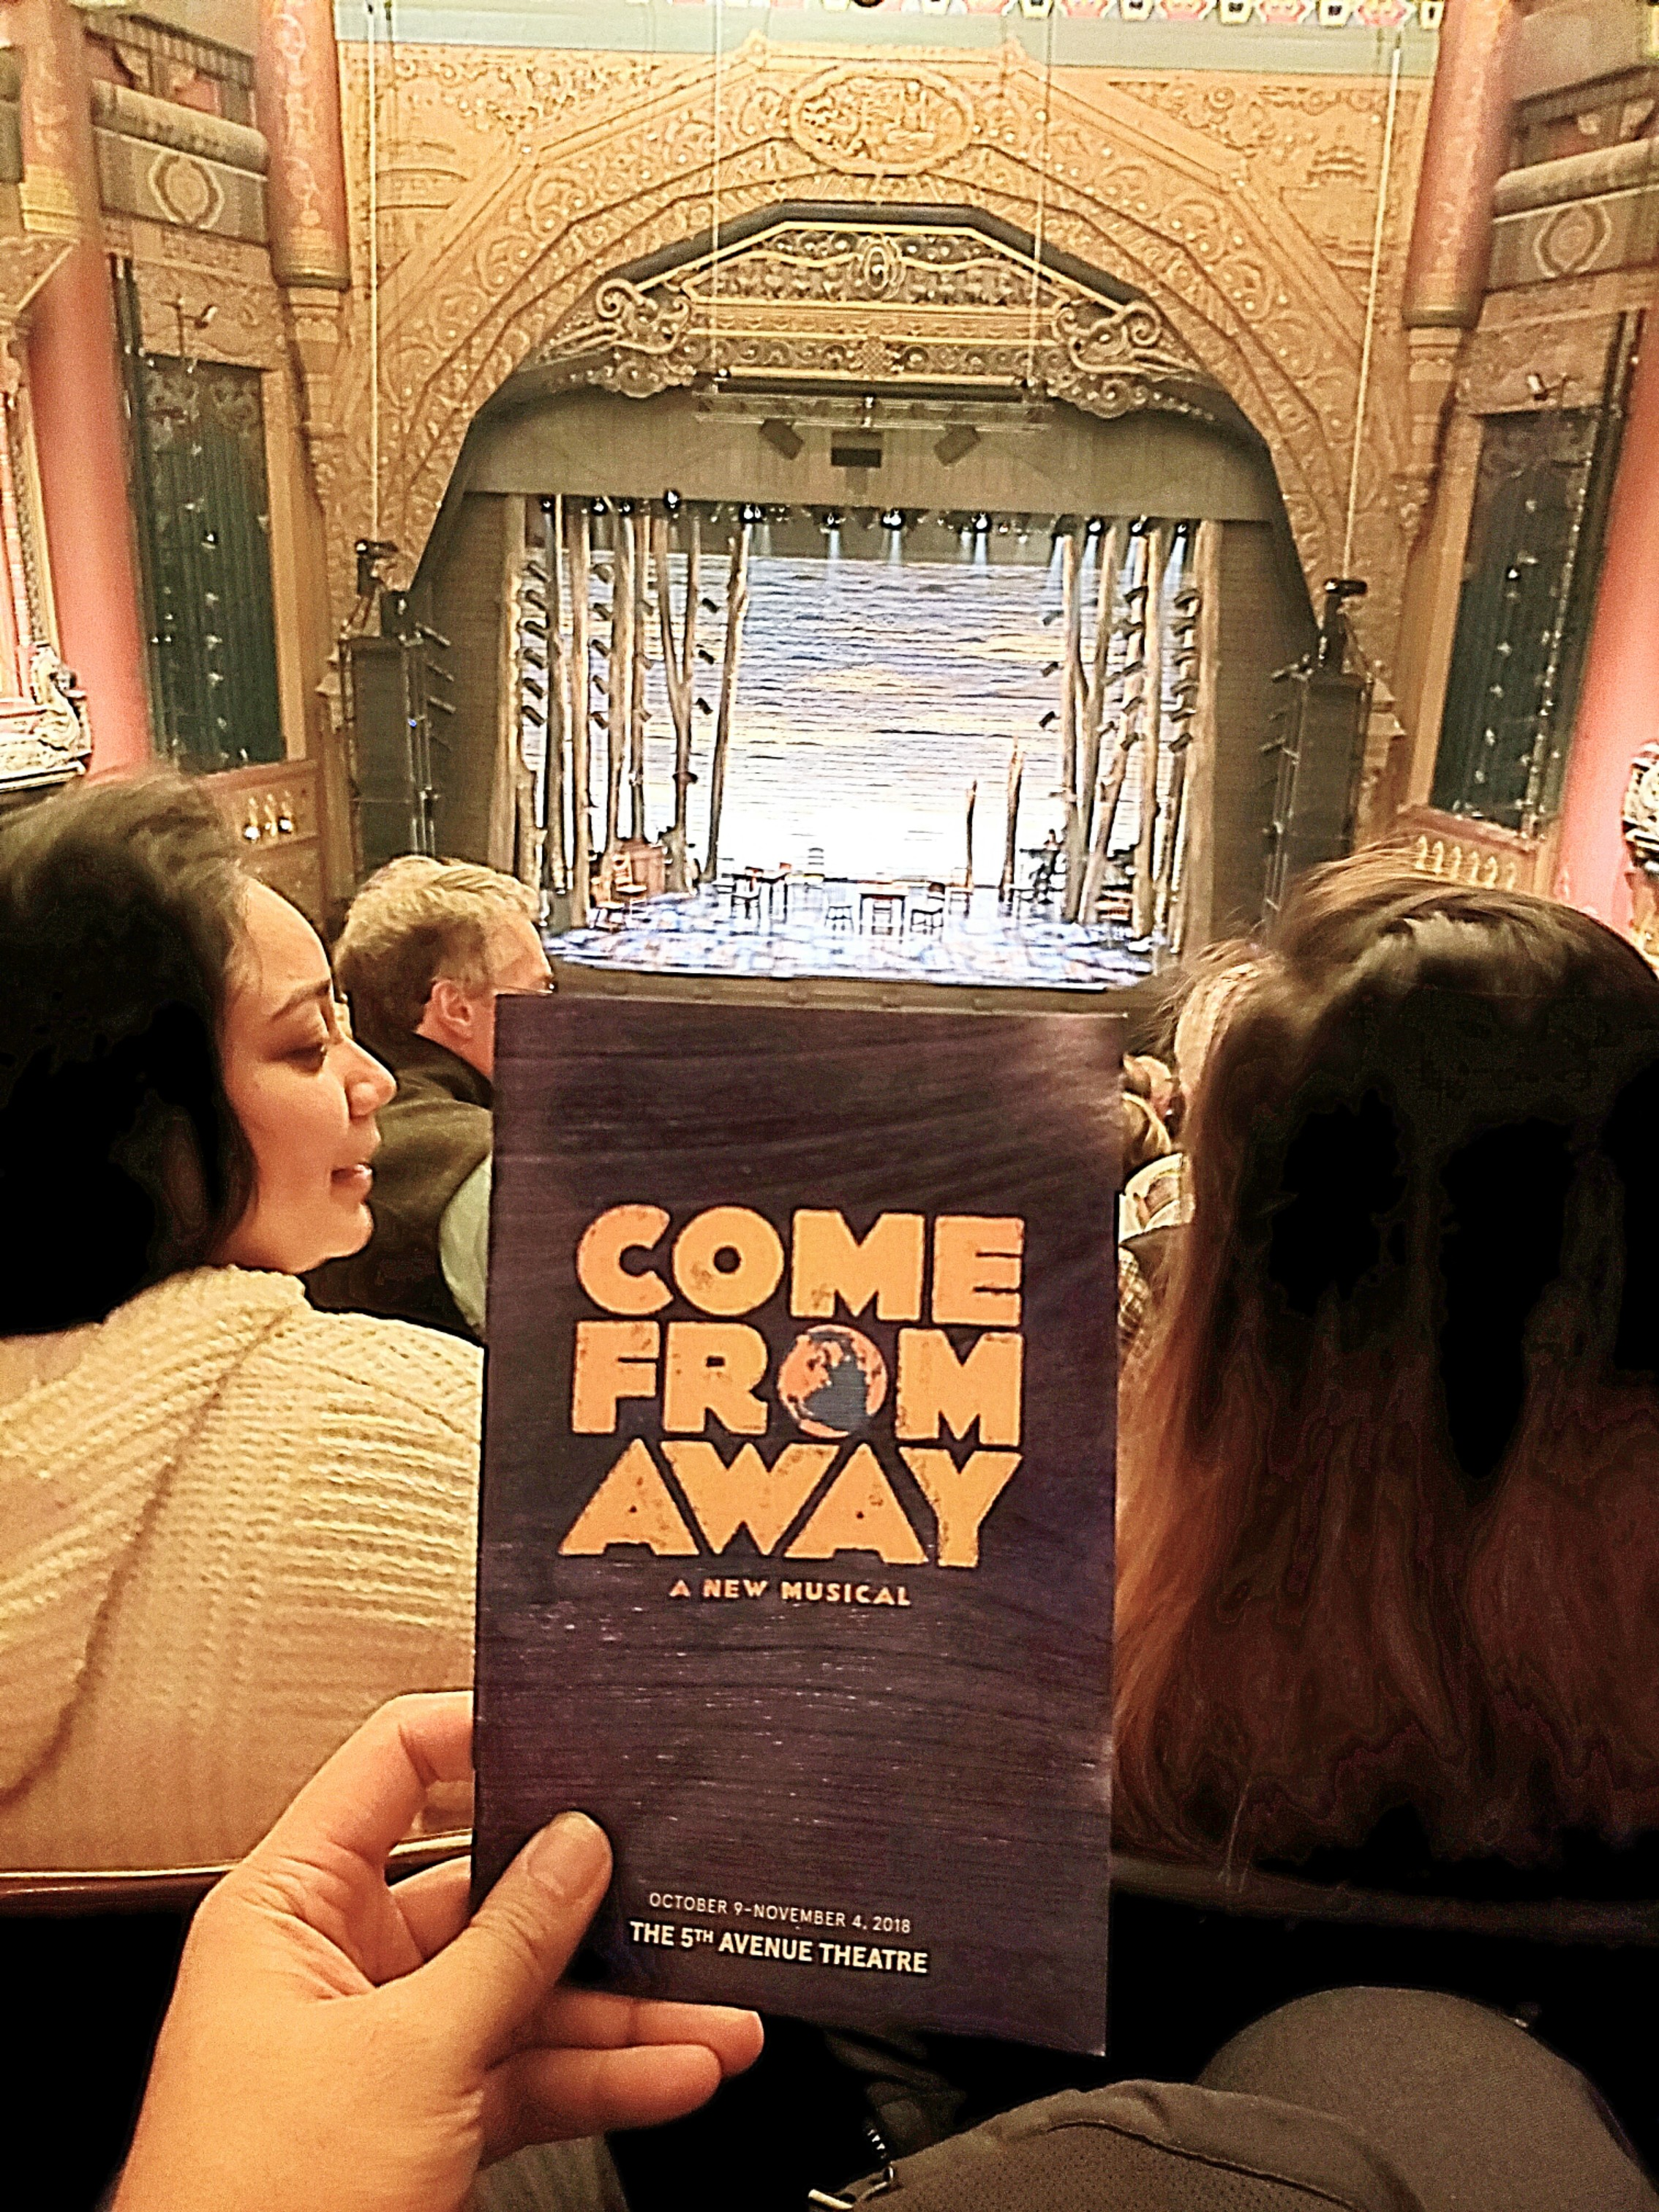 Watched the Tony Awards-winning musical Come From Away. It's a beautiful story that celebrates humanity's spirit of generosity and kindness after 9/11 in a Love Actually way.